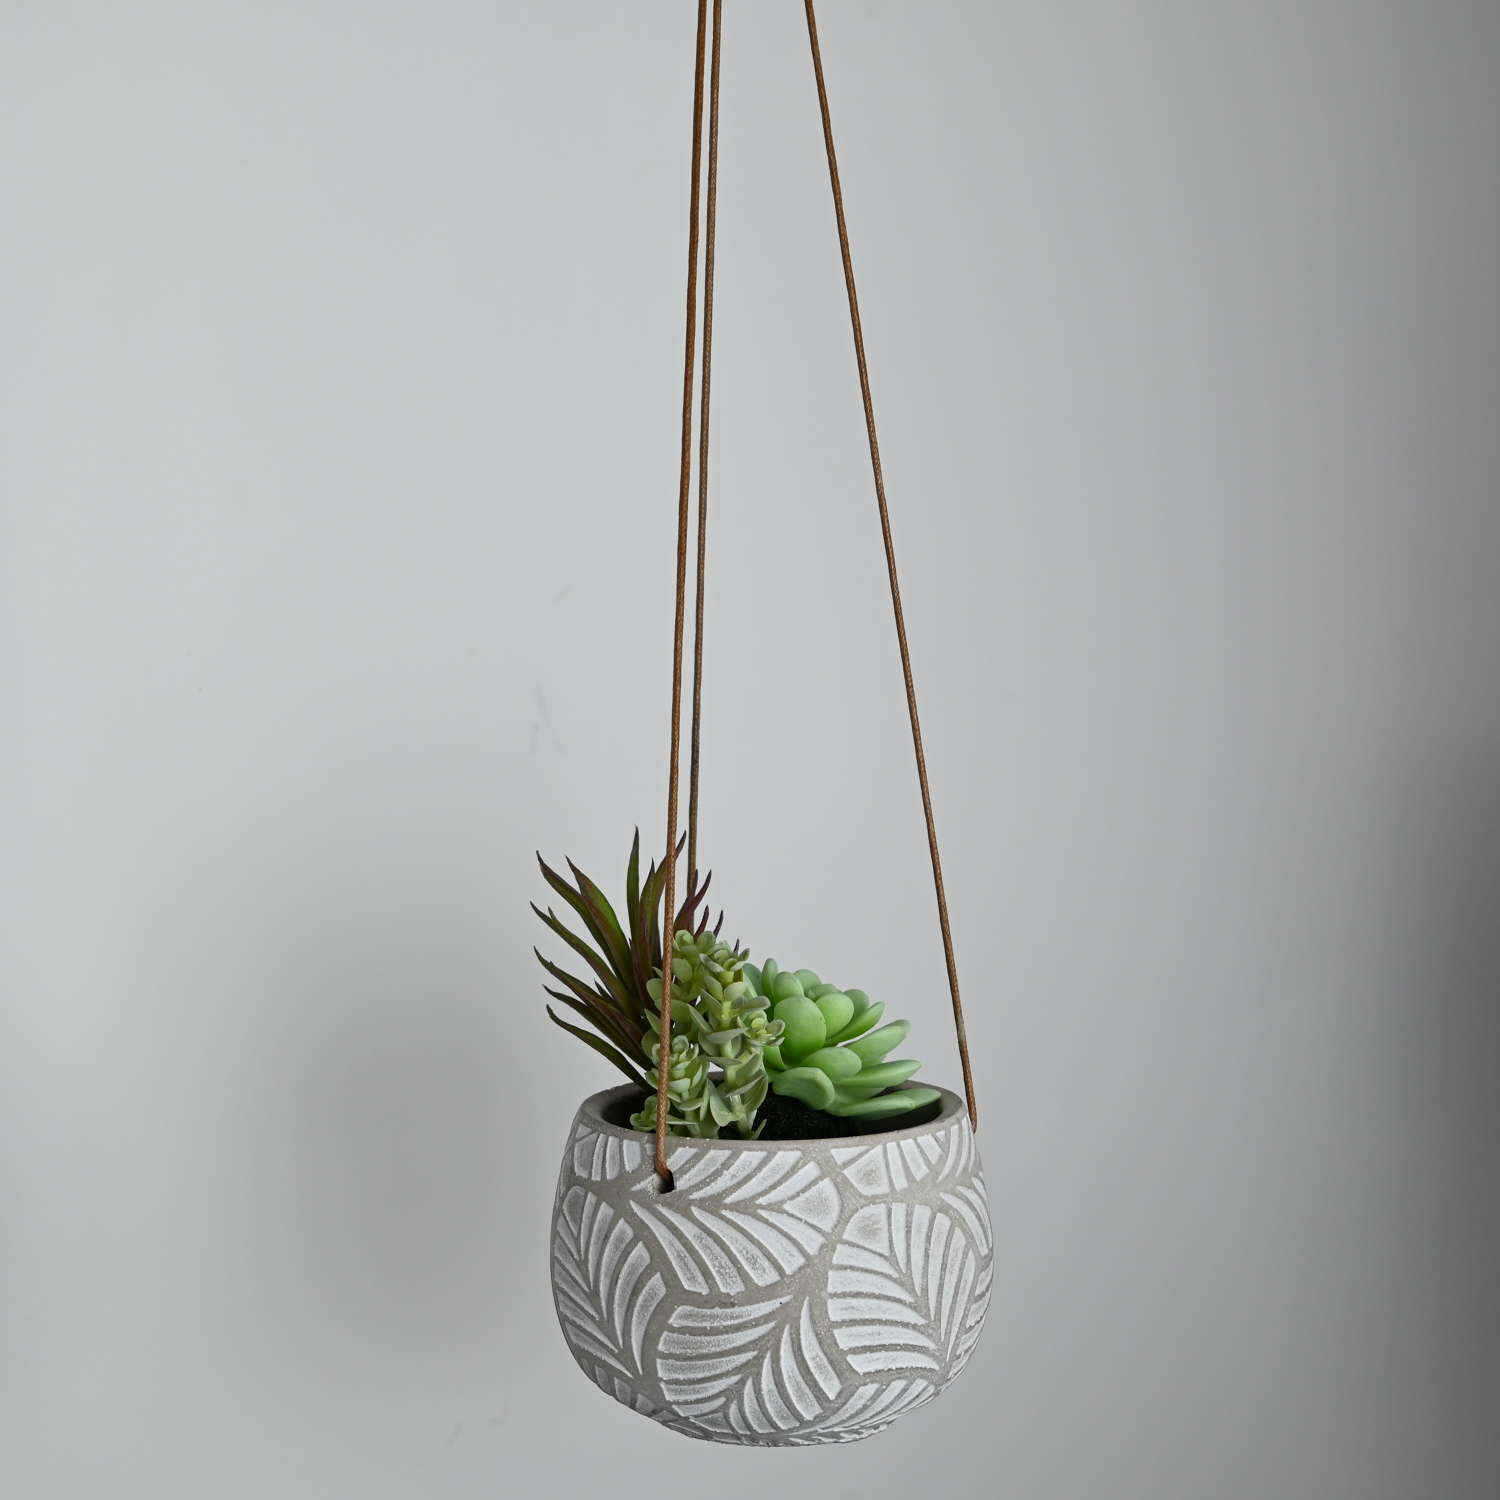 Cement hanging planter